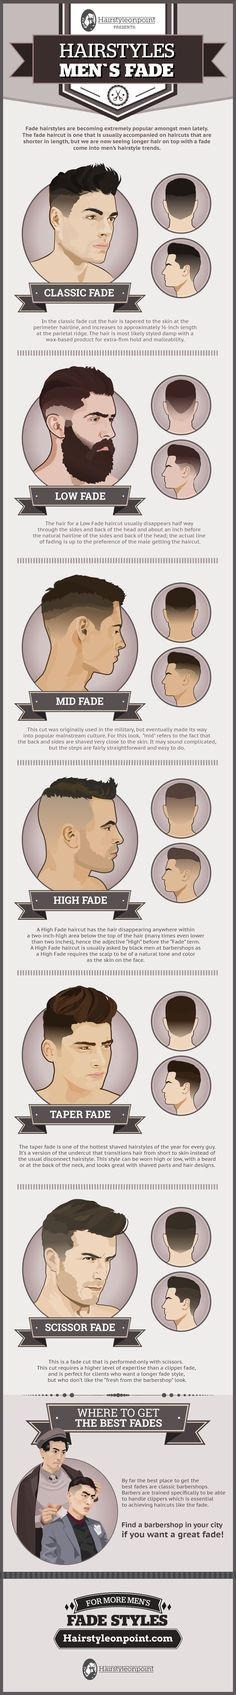 fade hairstyles for men infographic